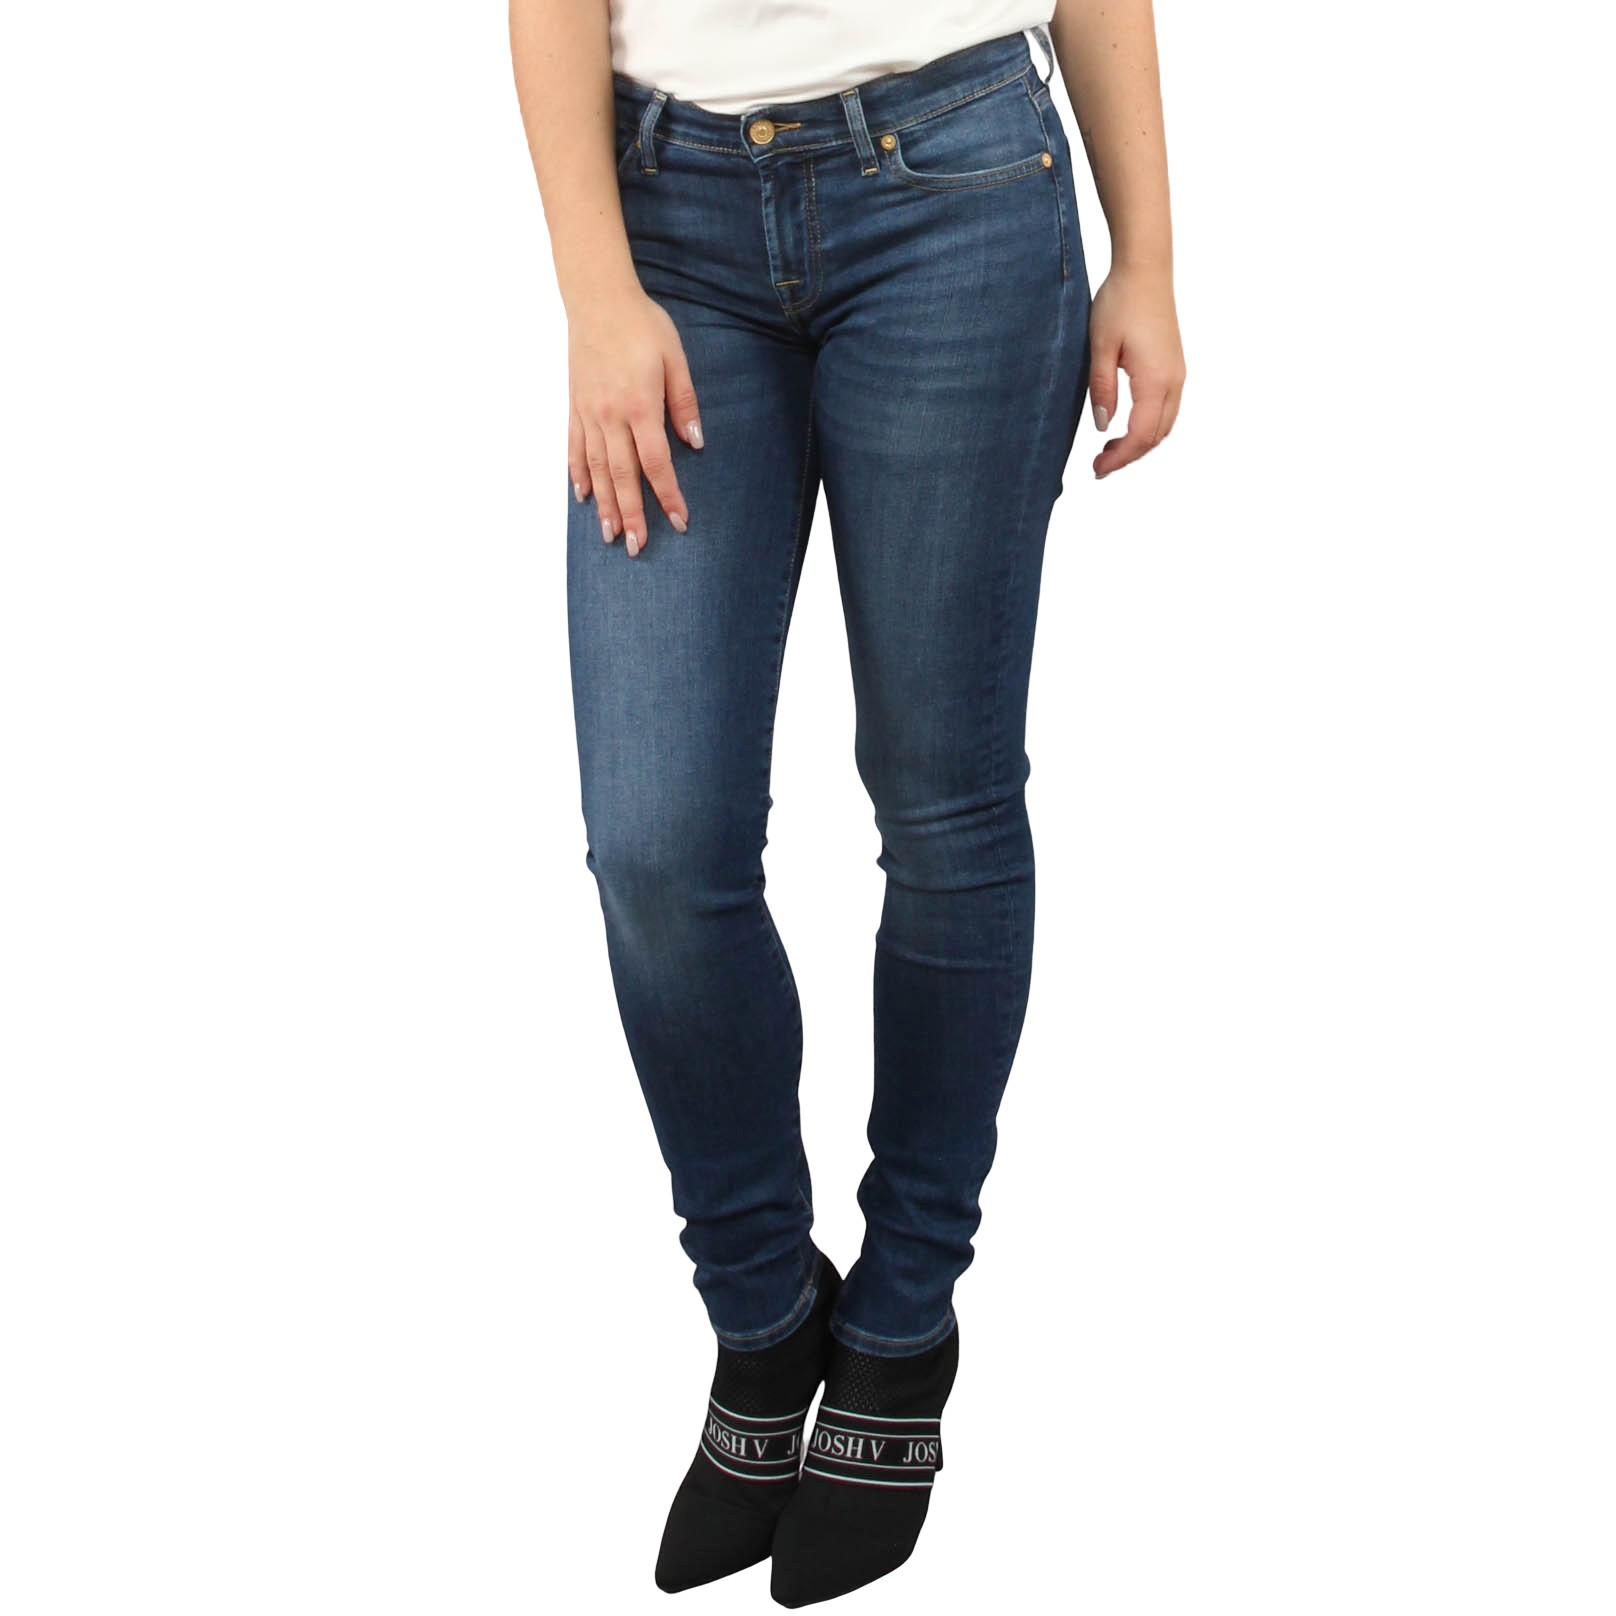 7 for all mankind The Skinny Bair Duchess